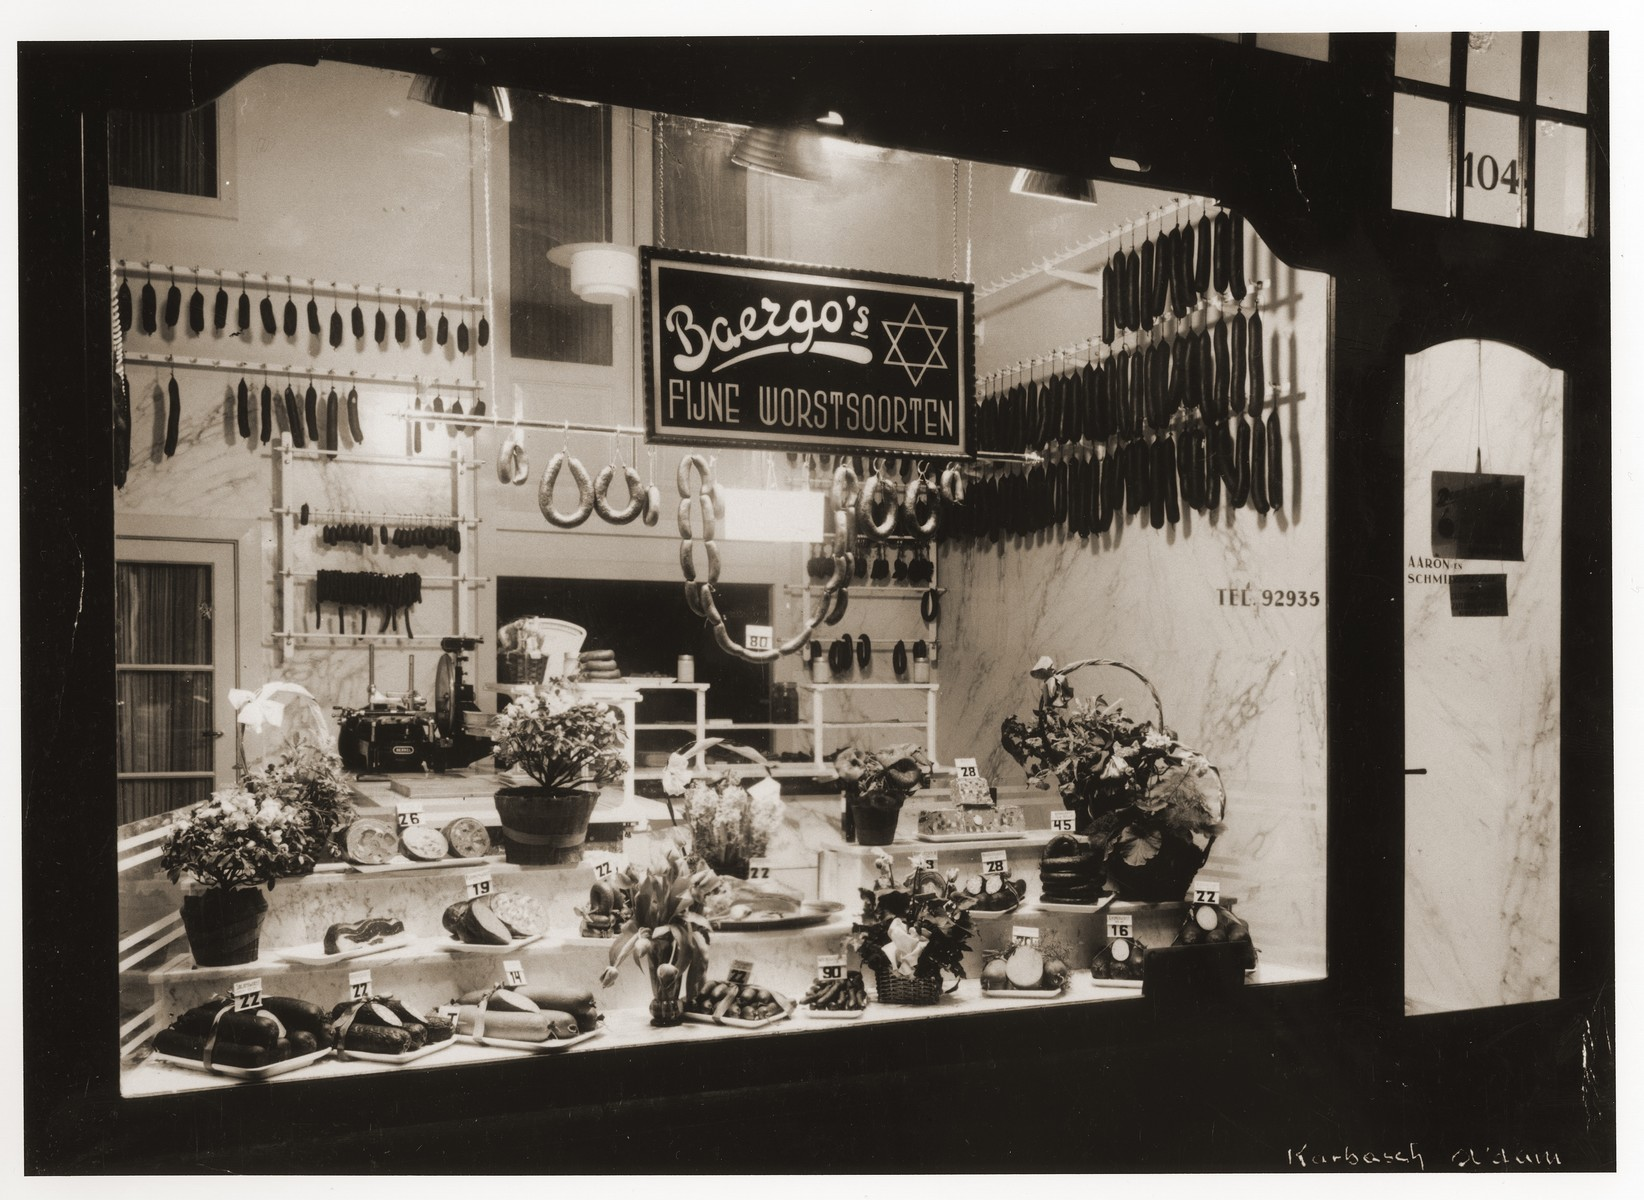 View of the entrance and display window of the Baergo butcher shop in Amsterdam, owned by Ernst Baer, a German Jewish emigre.